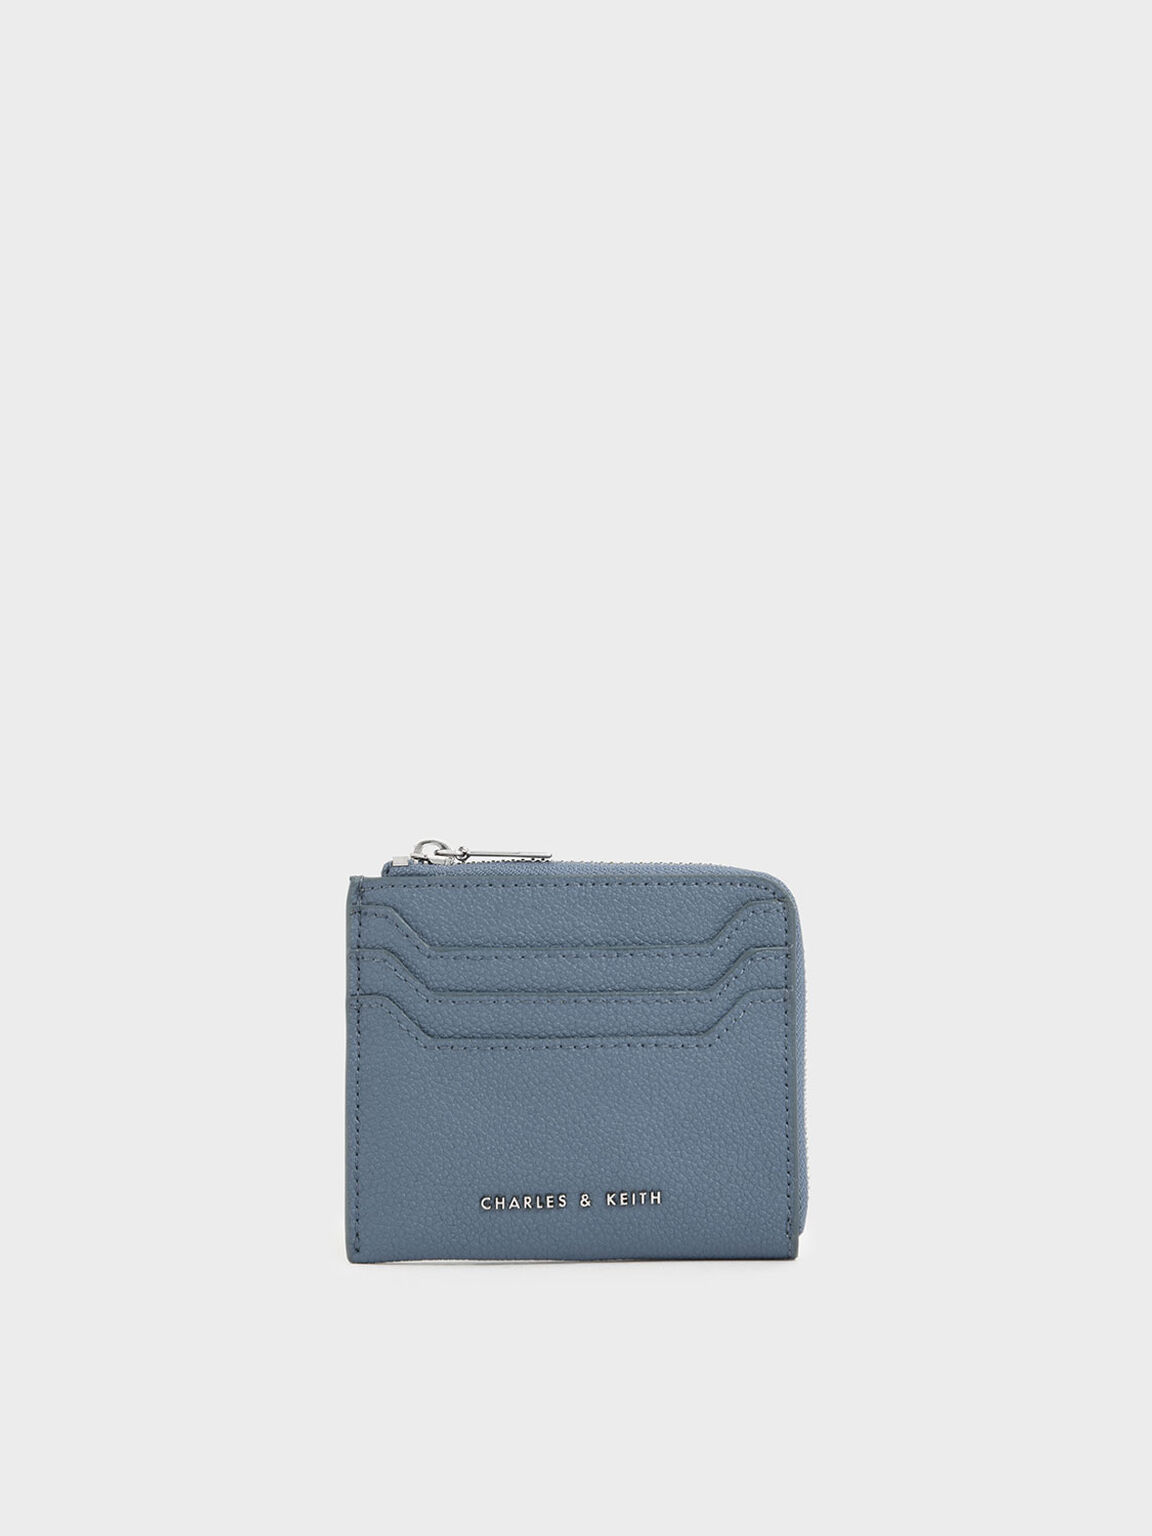 Small Zip Pouch, Slate Blue, hi-res